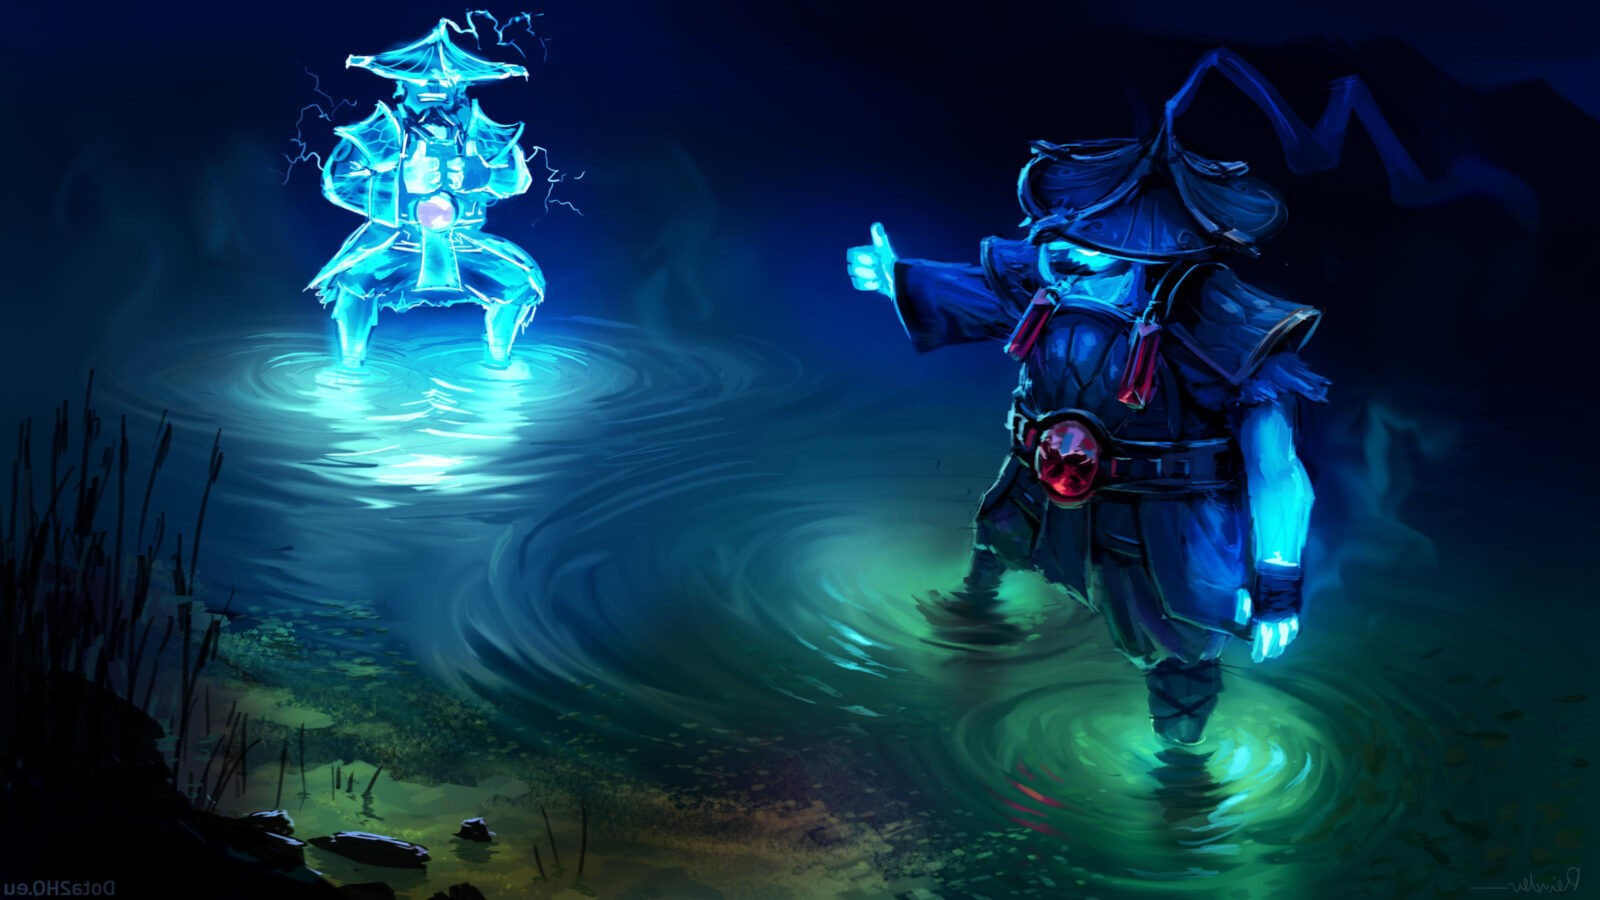 17 Dota 2 Storm Spirit Wallpapers Hd Free Download